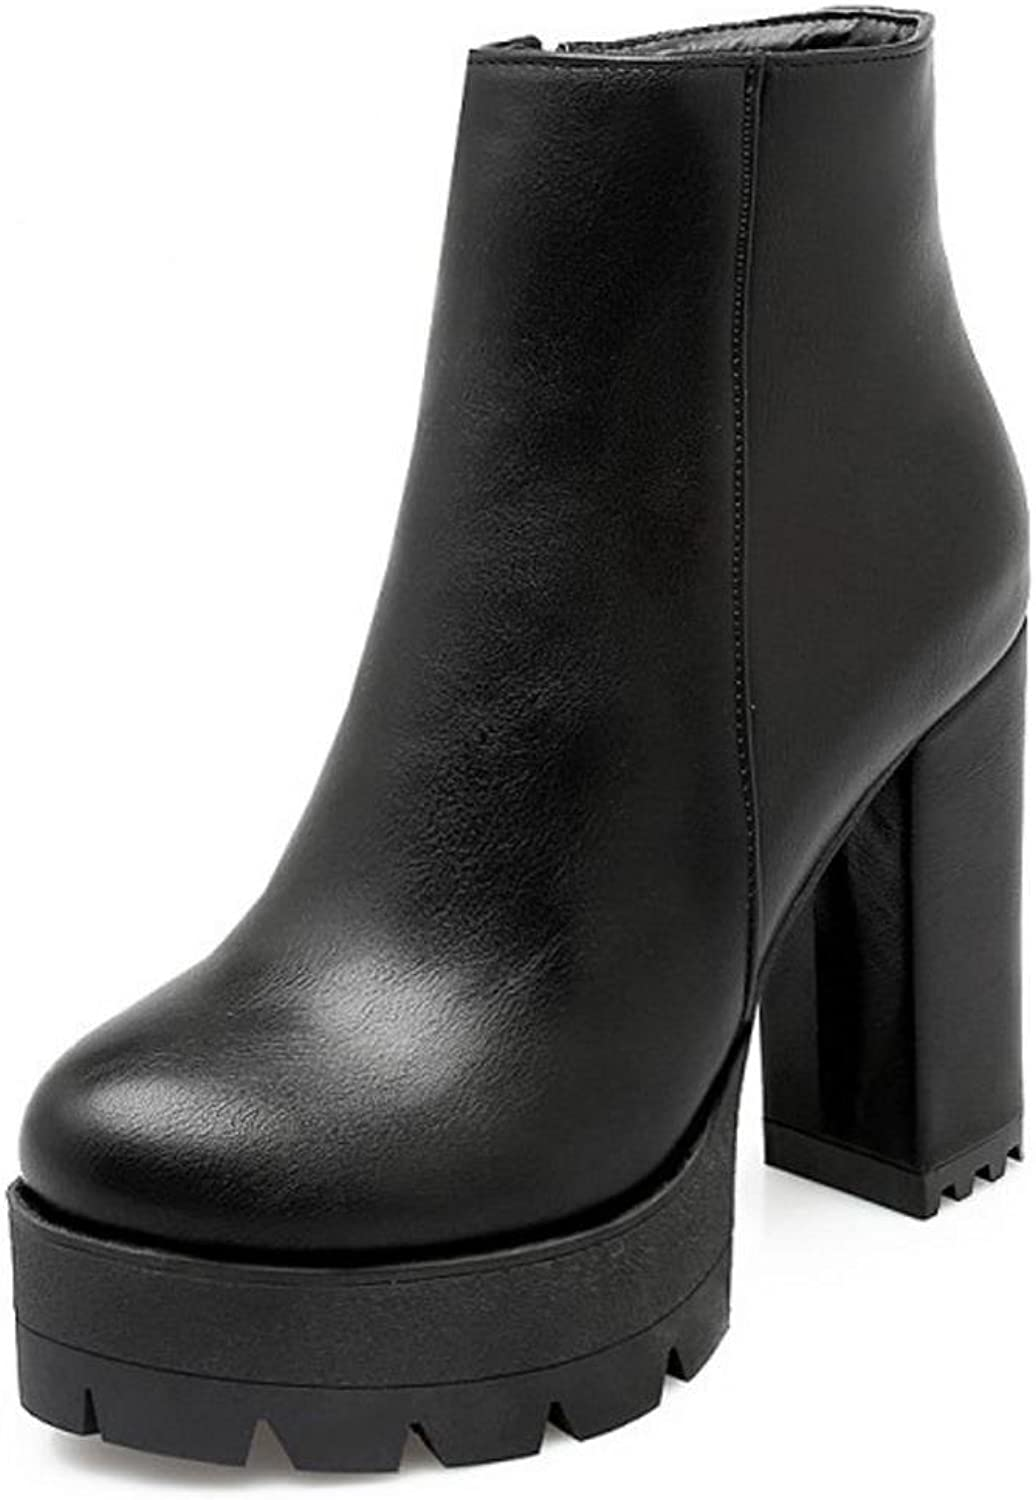 CarziCuzin Women Dress Chunky High Heel Ankle Boots Zip